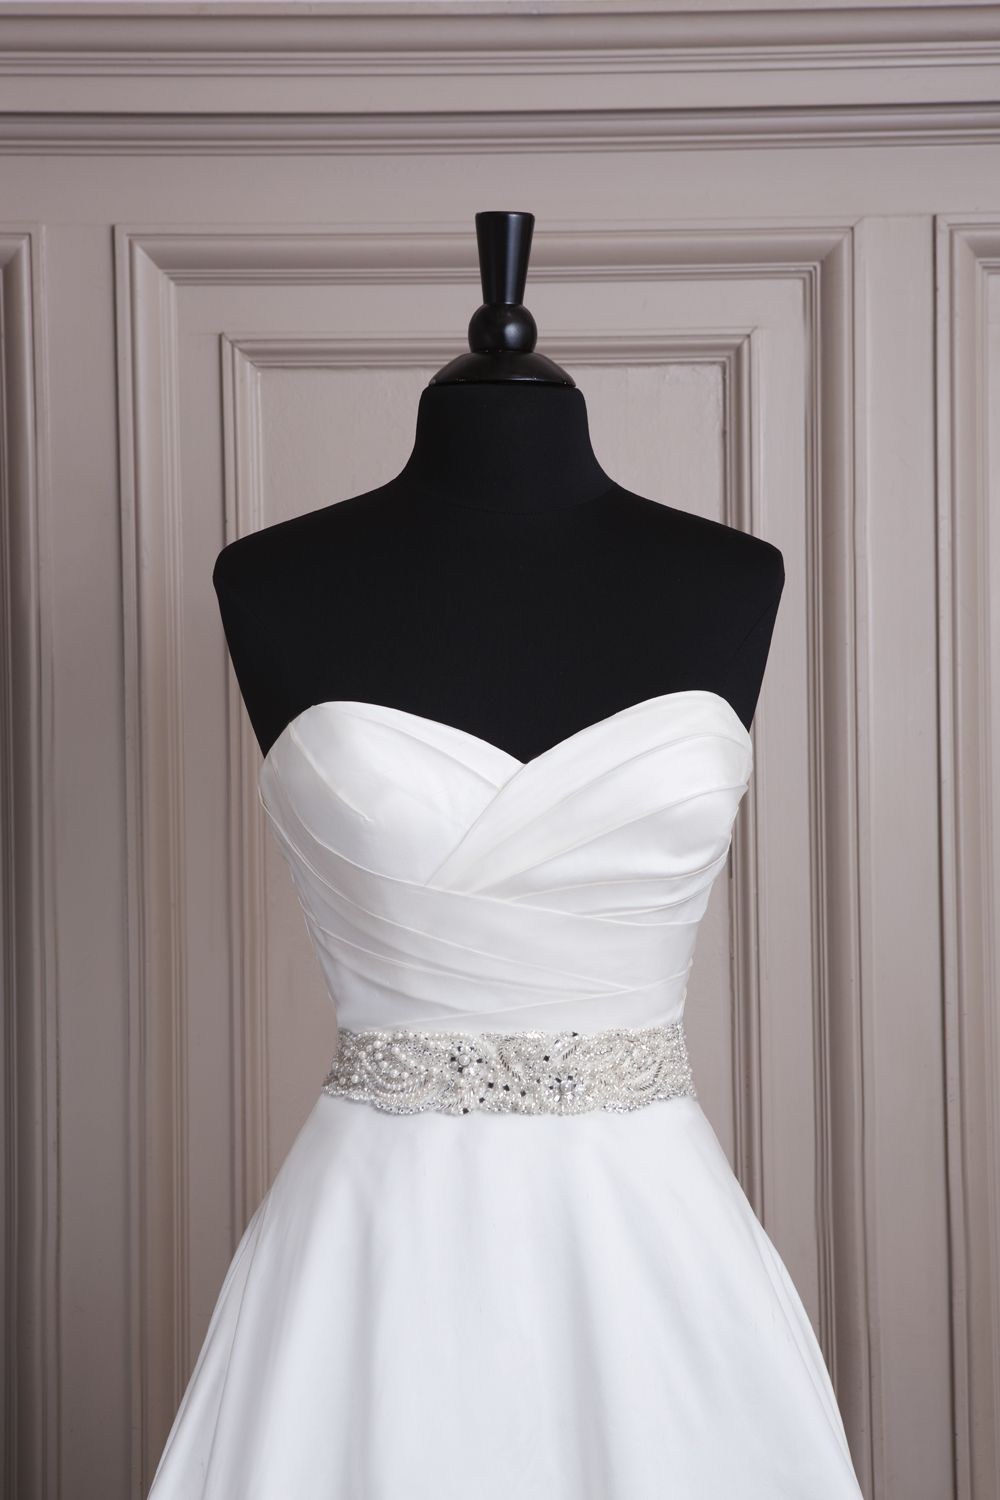 Pearl belt for wedding dress  Sincerity wedding accessories style A All over beaded belt with